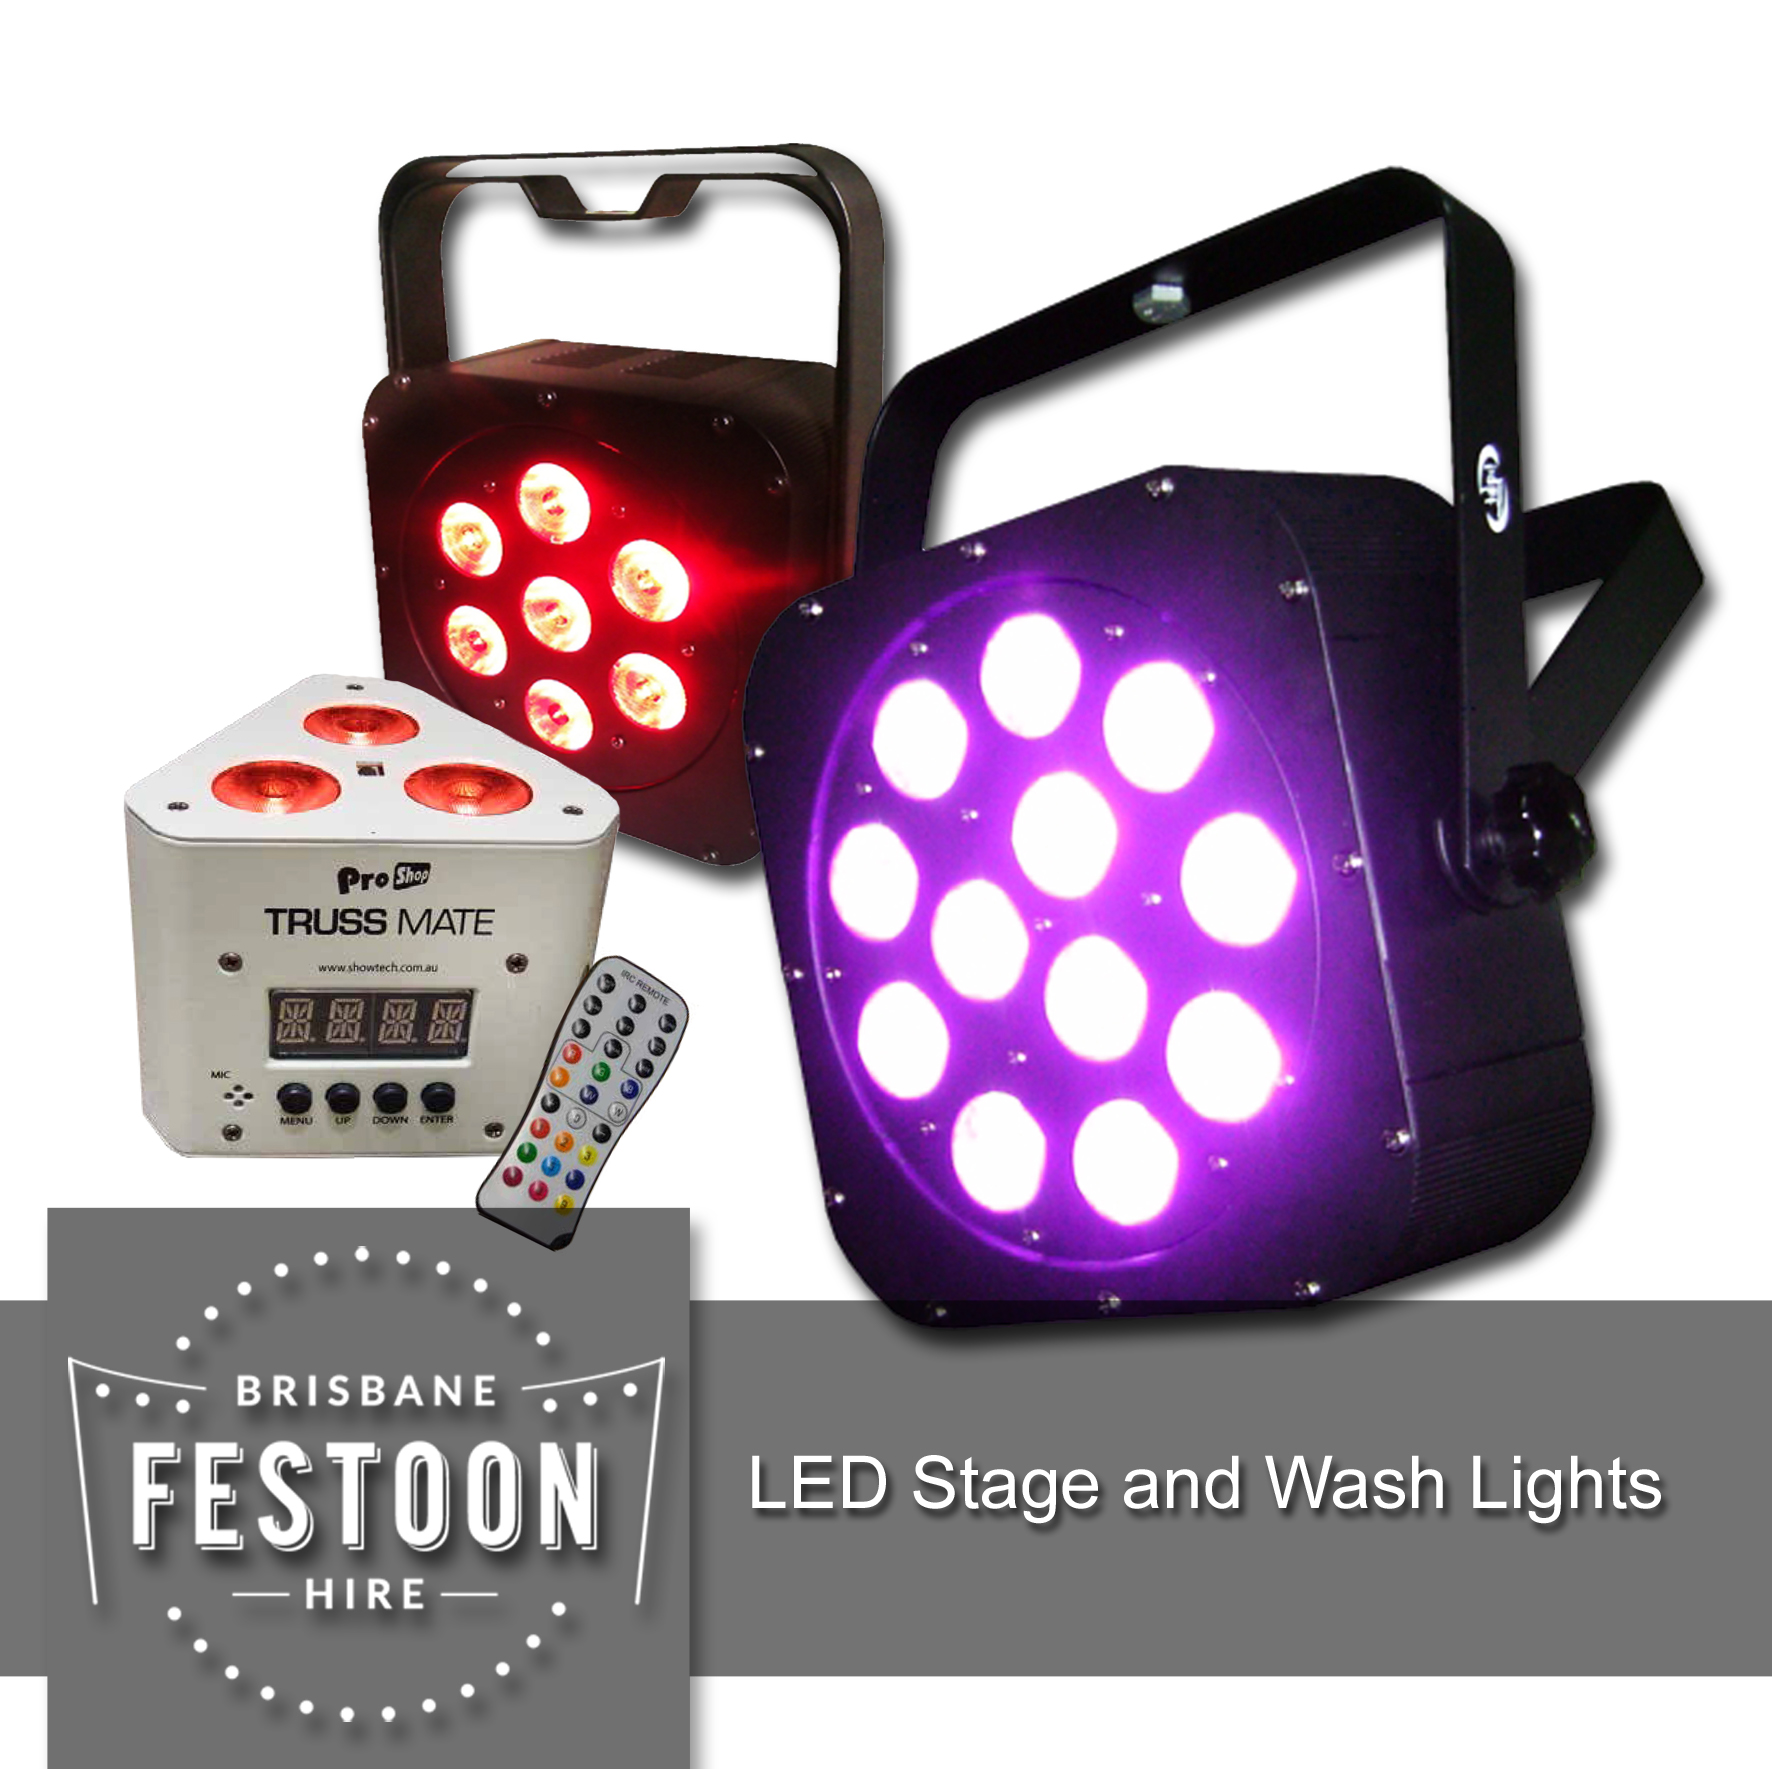 Brisbane Festoon Hire - LED Wash Light Hire 3.jpg